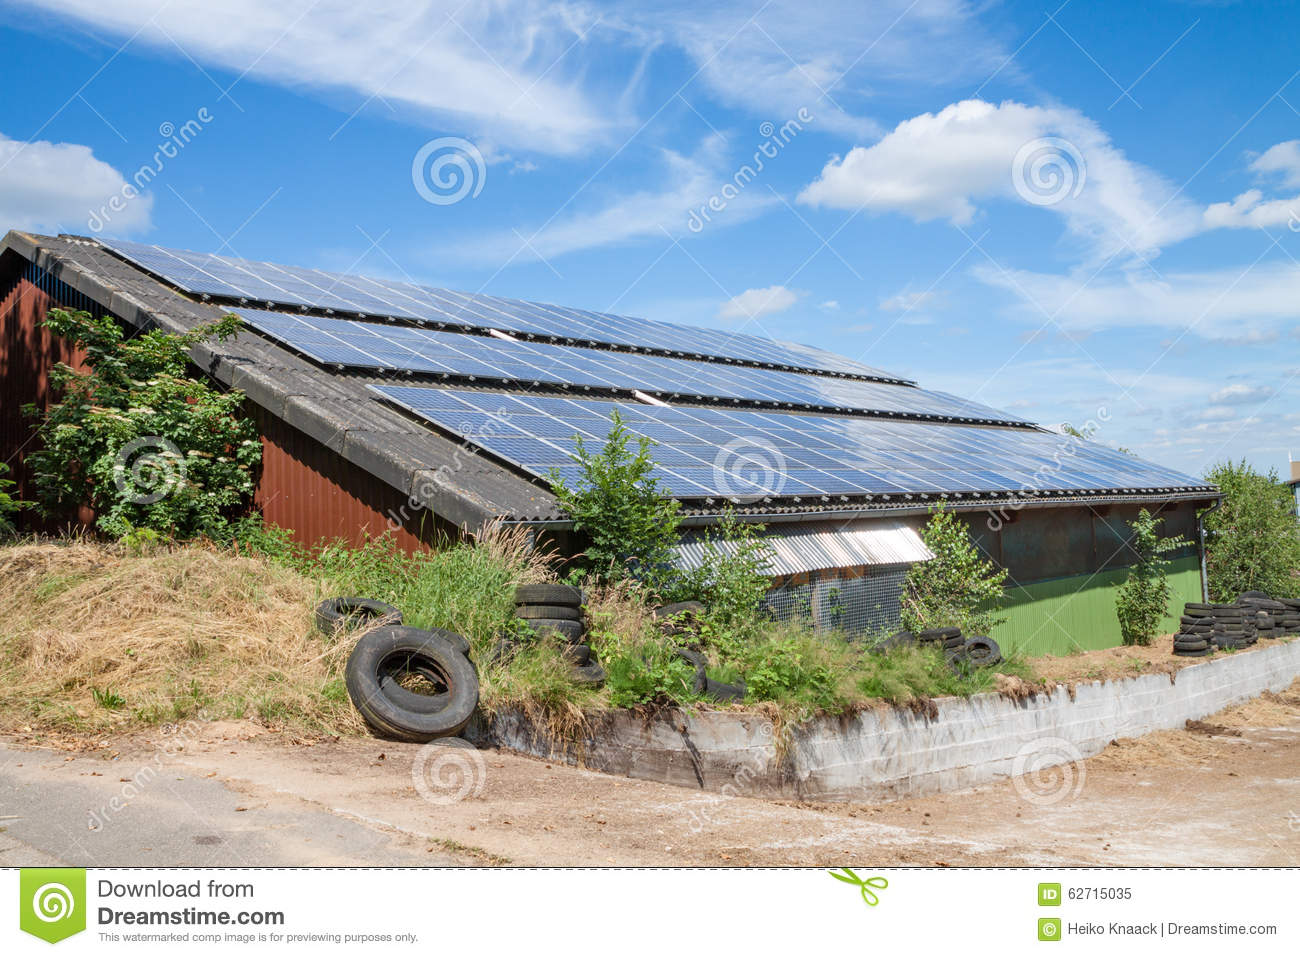 Solar Panels Mounted On A Rooftop Stock Photo - Image: 62715035